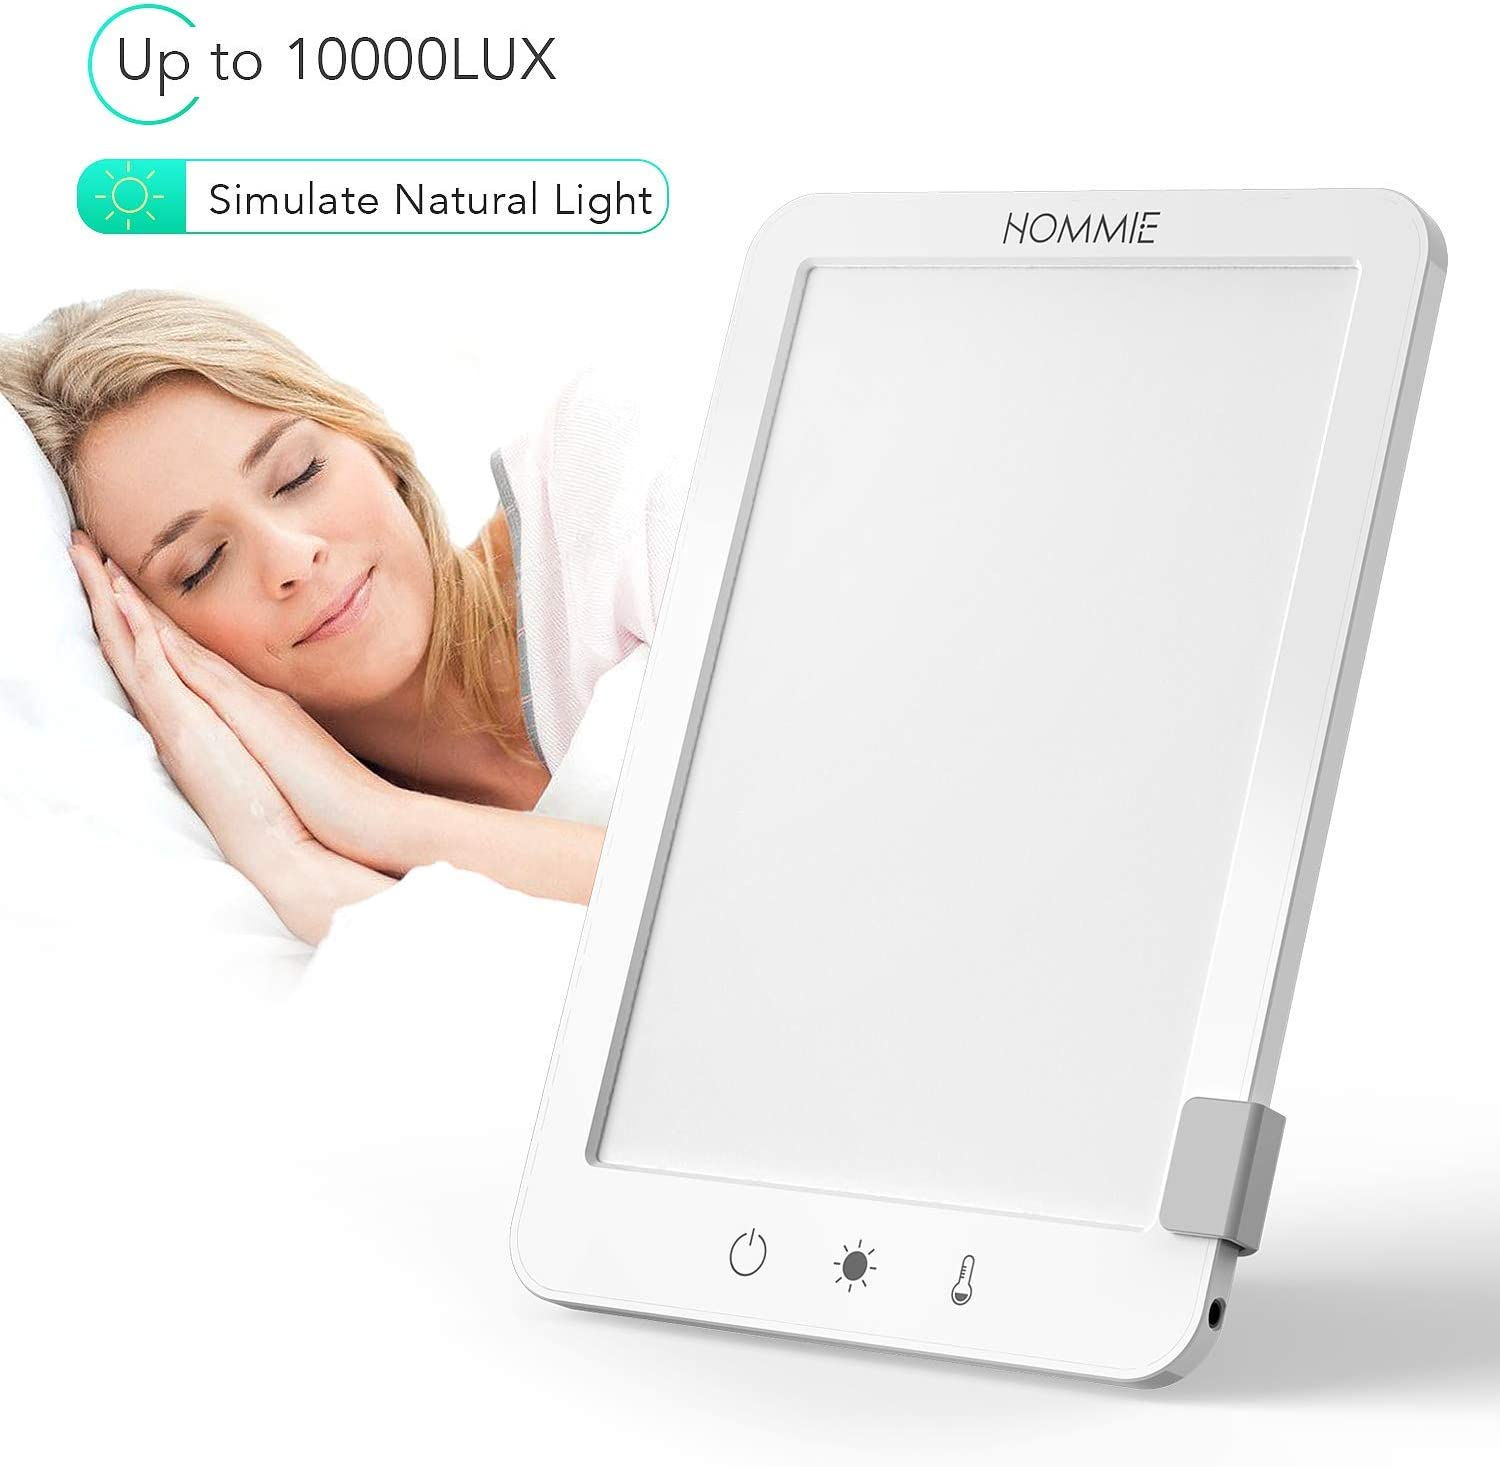 Light Therapy Lamp, Hommie 10000 Lux Full Spectrum Light UV Free SAD Lamp with 3 Adjustable Color Temperatures, Detachable Bracket, Touch Control Compact Size